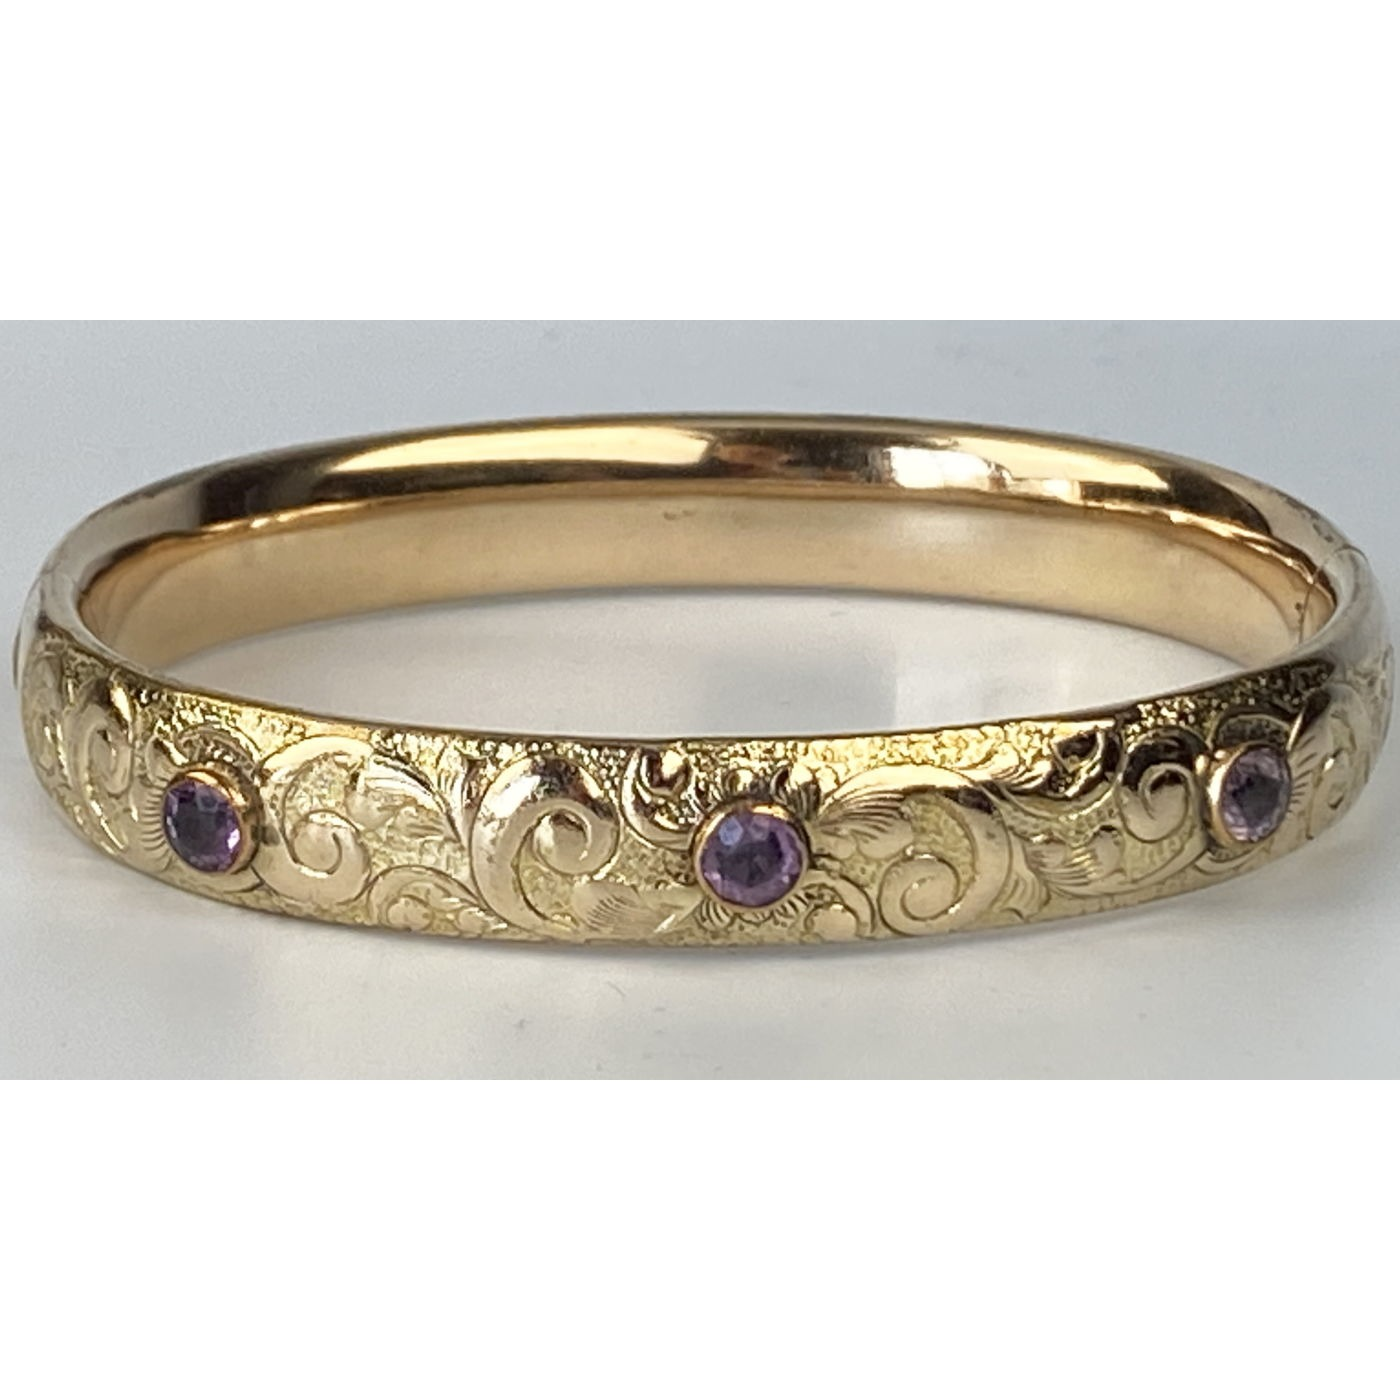 Deeply Engraved with Light Purple Stones Engagement Bangle